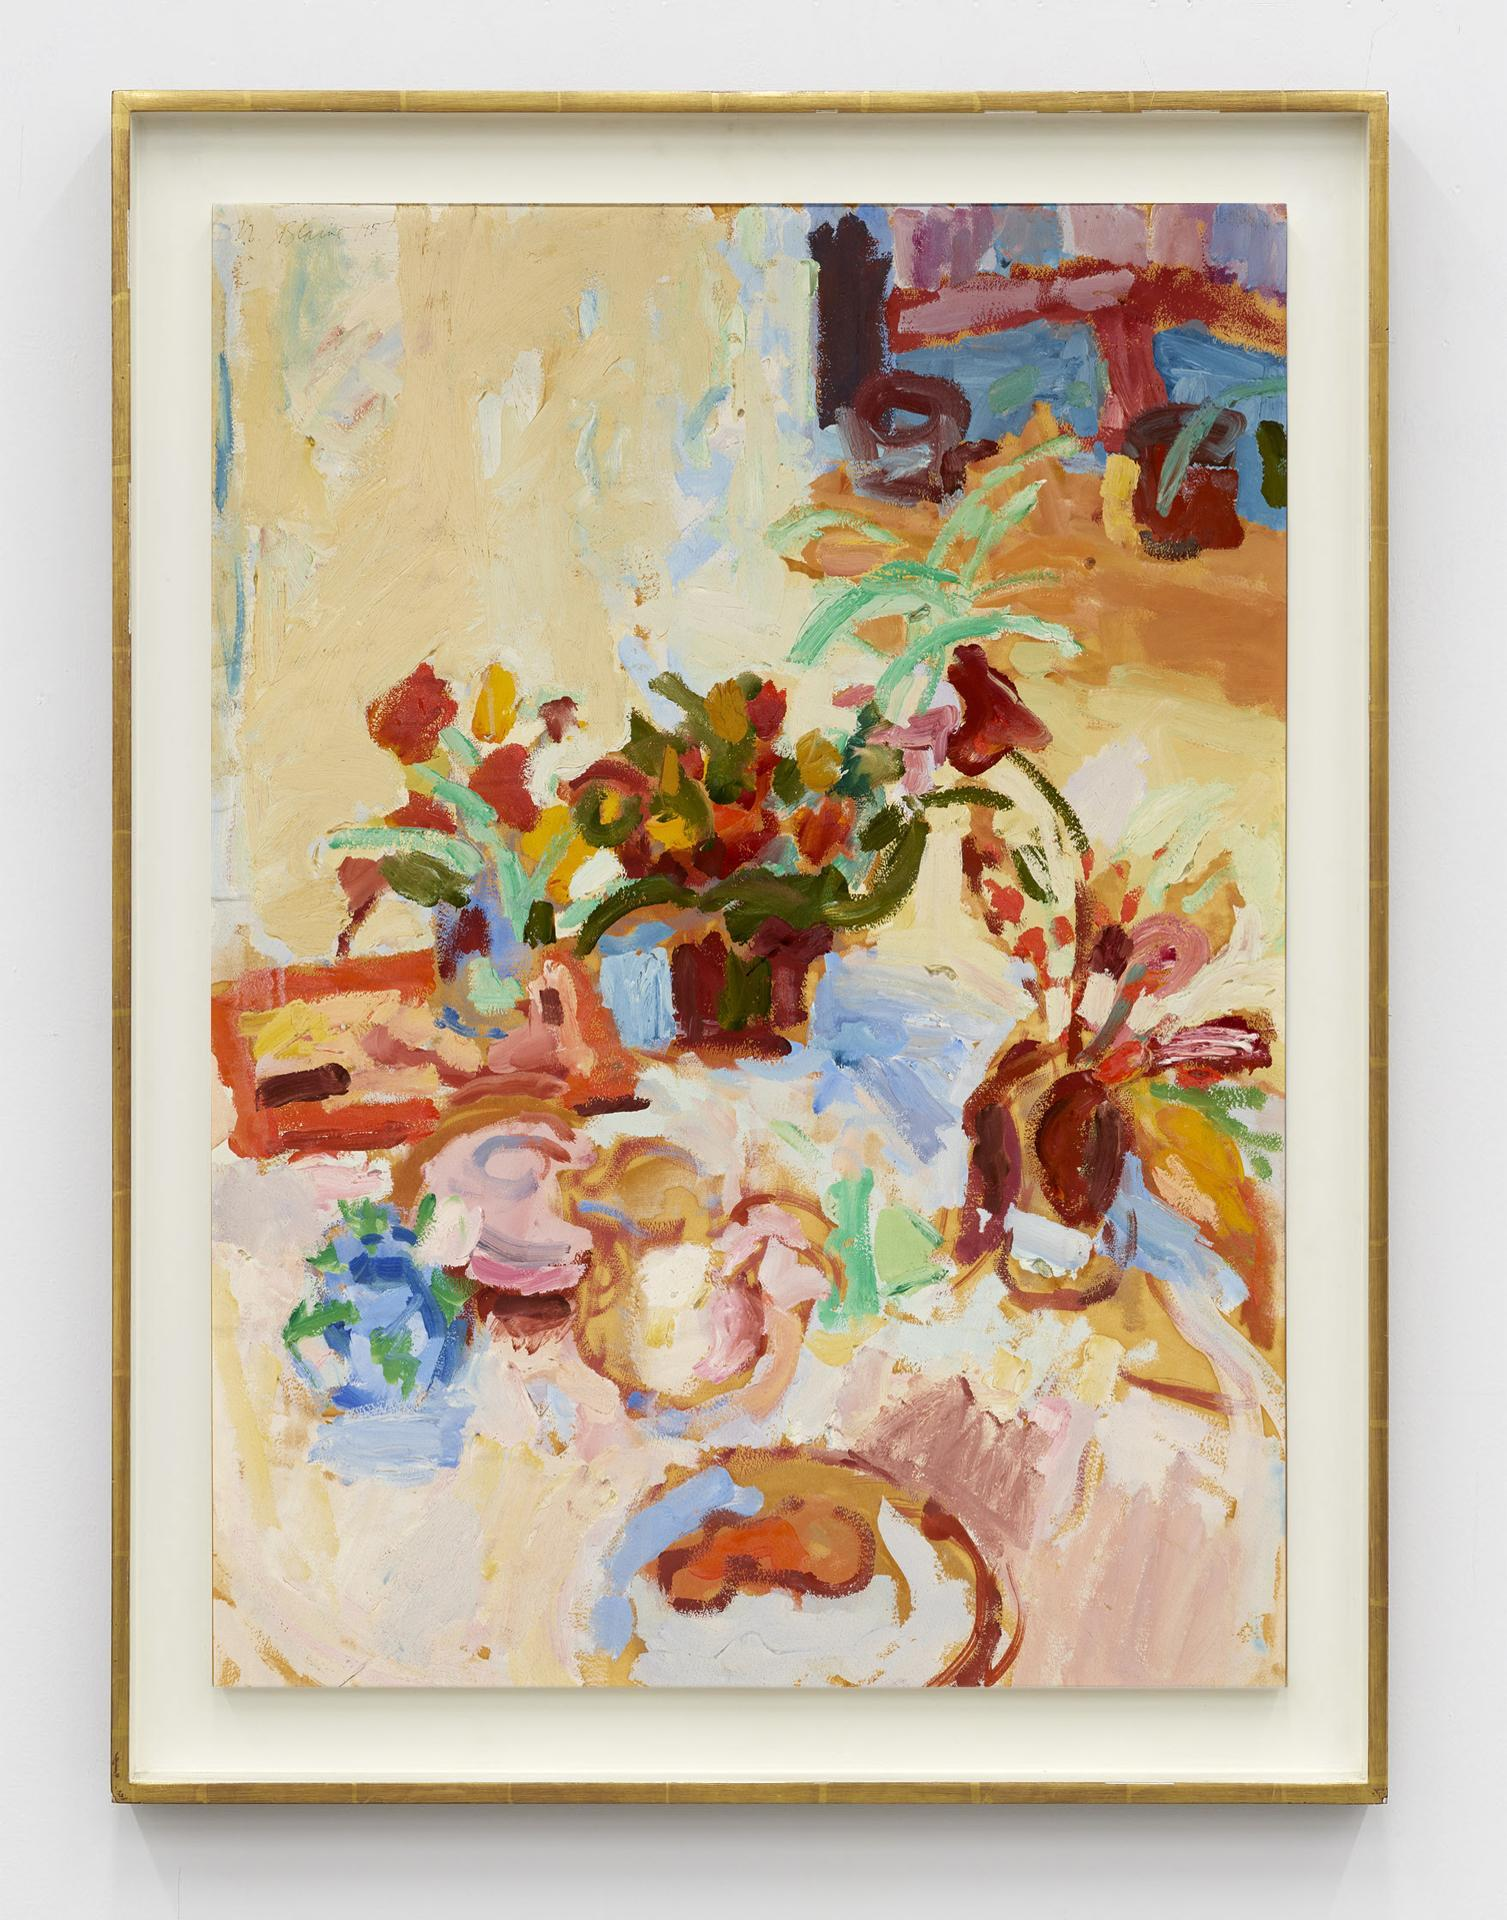 Nell Blaine, /Untitled/, 1957, oil on canvas laid to Masonite, 76.2 × 55.88  cm